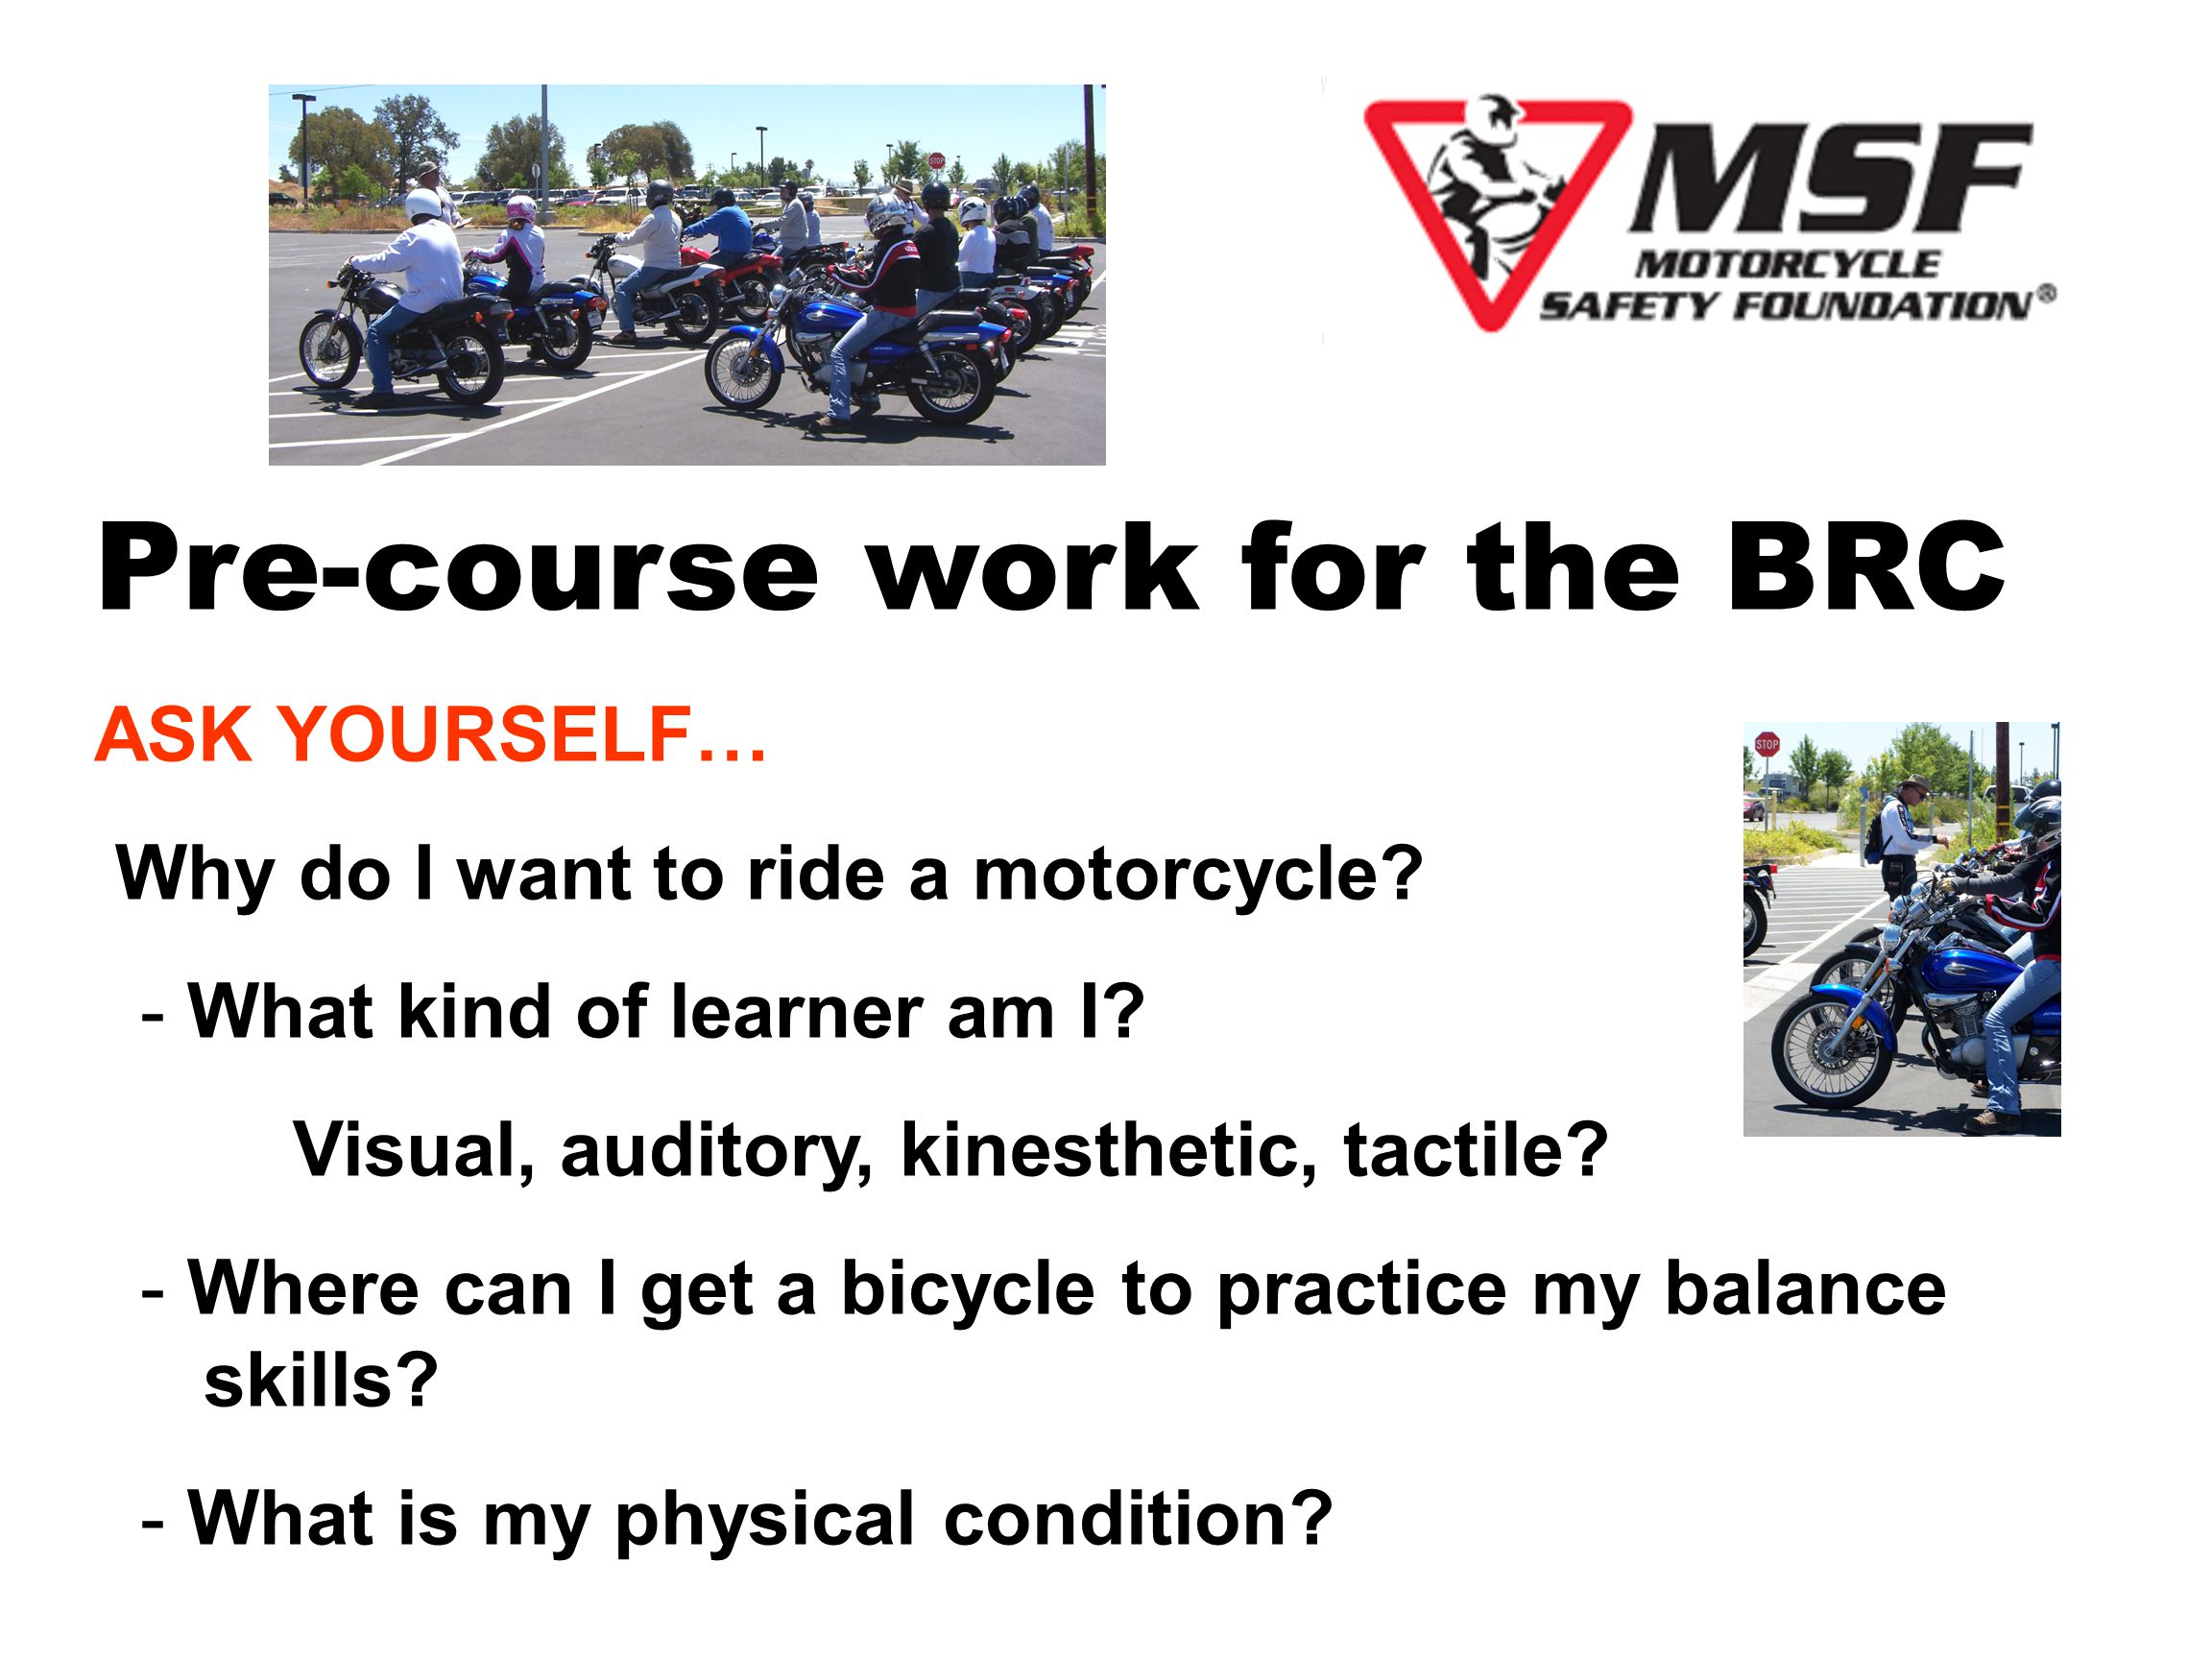 THE BASIC RIDER COURSE 5 Hours of Classroom + Knowledge Test 10 Hours of Range Exercises + Evaluation What can you do to get ready for the class.